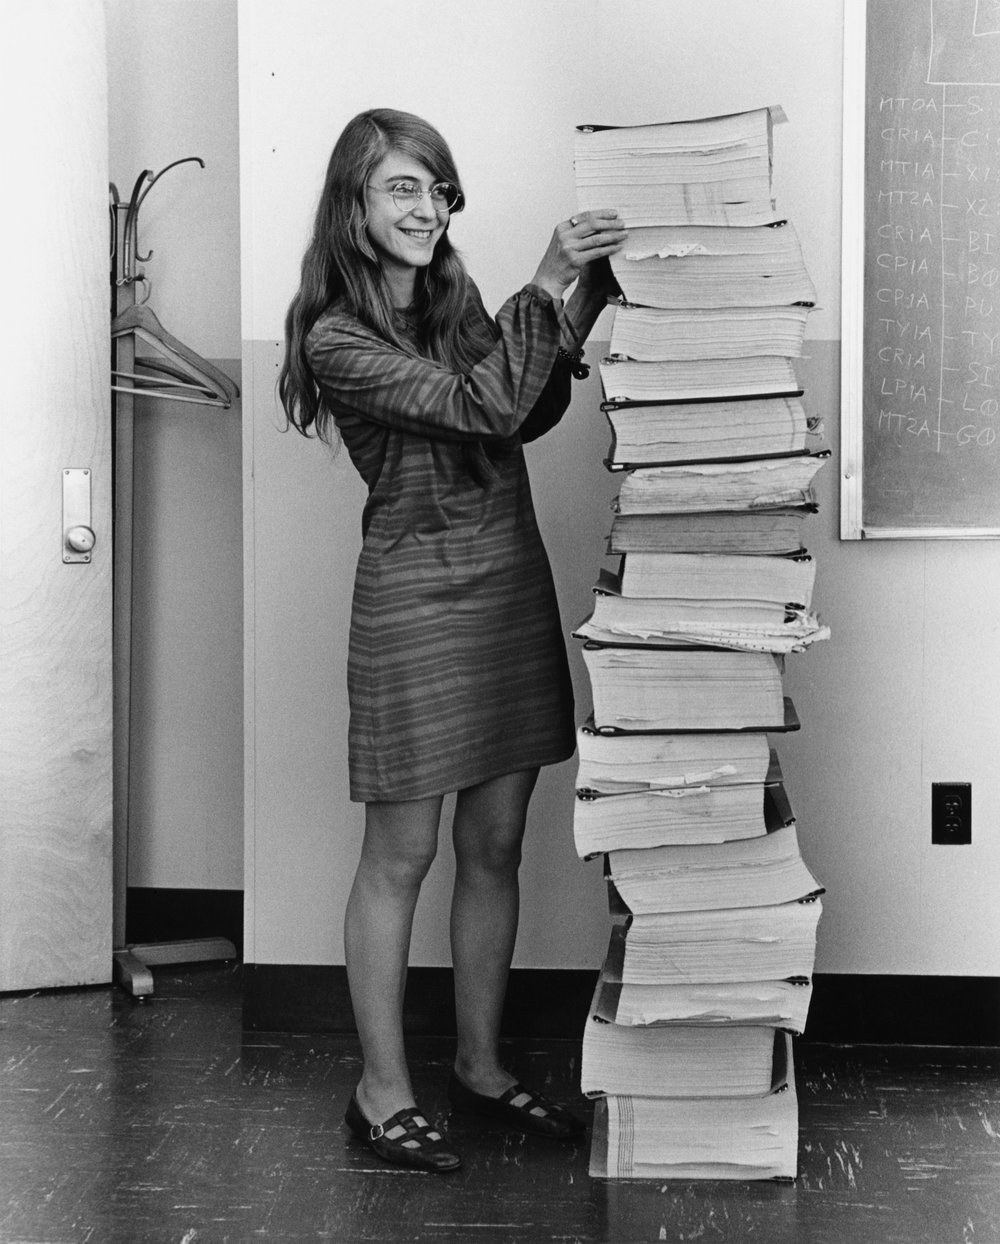 Margaret Hamilton - A woman who put pen to paper and helped put Apollo in space. Margaret was a software engineer who helped the development of Apollos guidance and navigation system. In recognition of her great accomplishments, she received the Presidential Medal of Freedom in 2016.